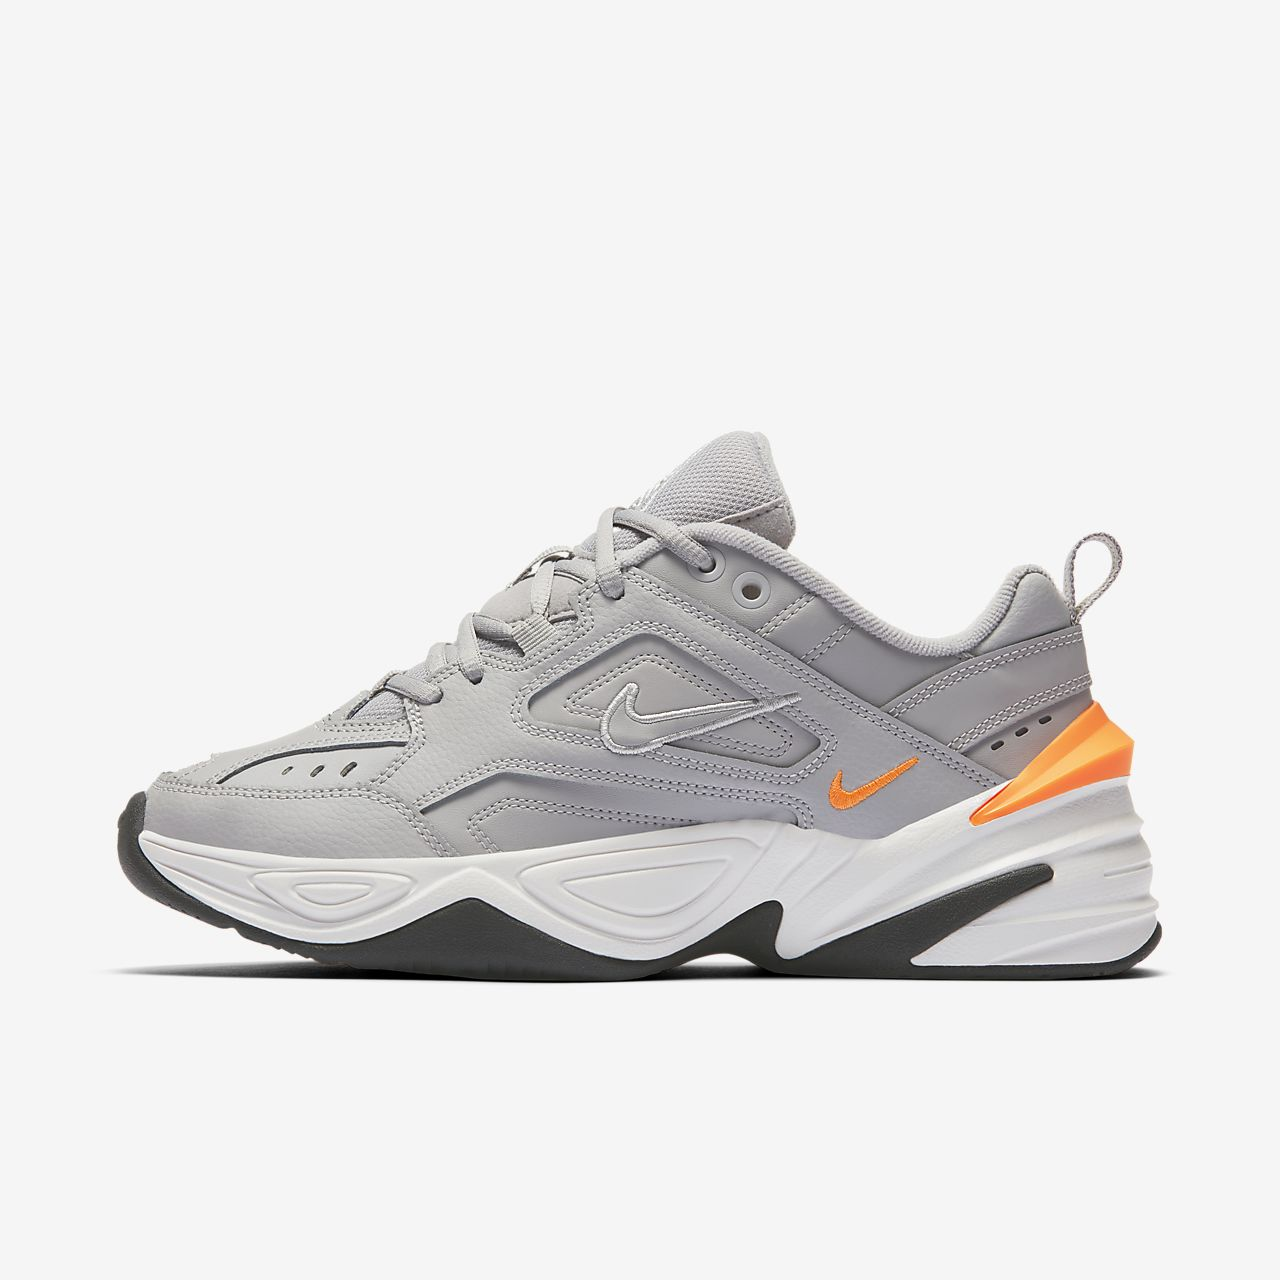 detailed look 41a5c 0fd89 ... where can i buy chaussure nike m2k tekno pour femme 9ead1 c752c